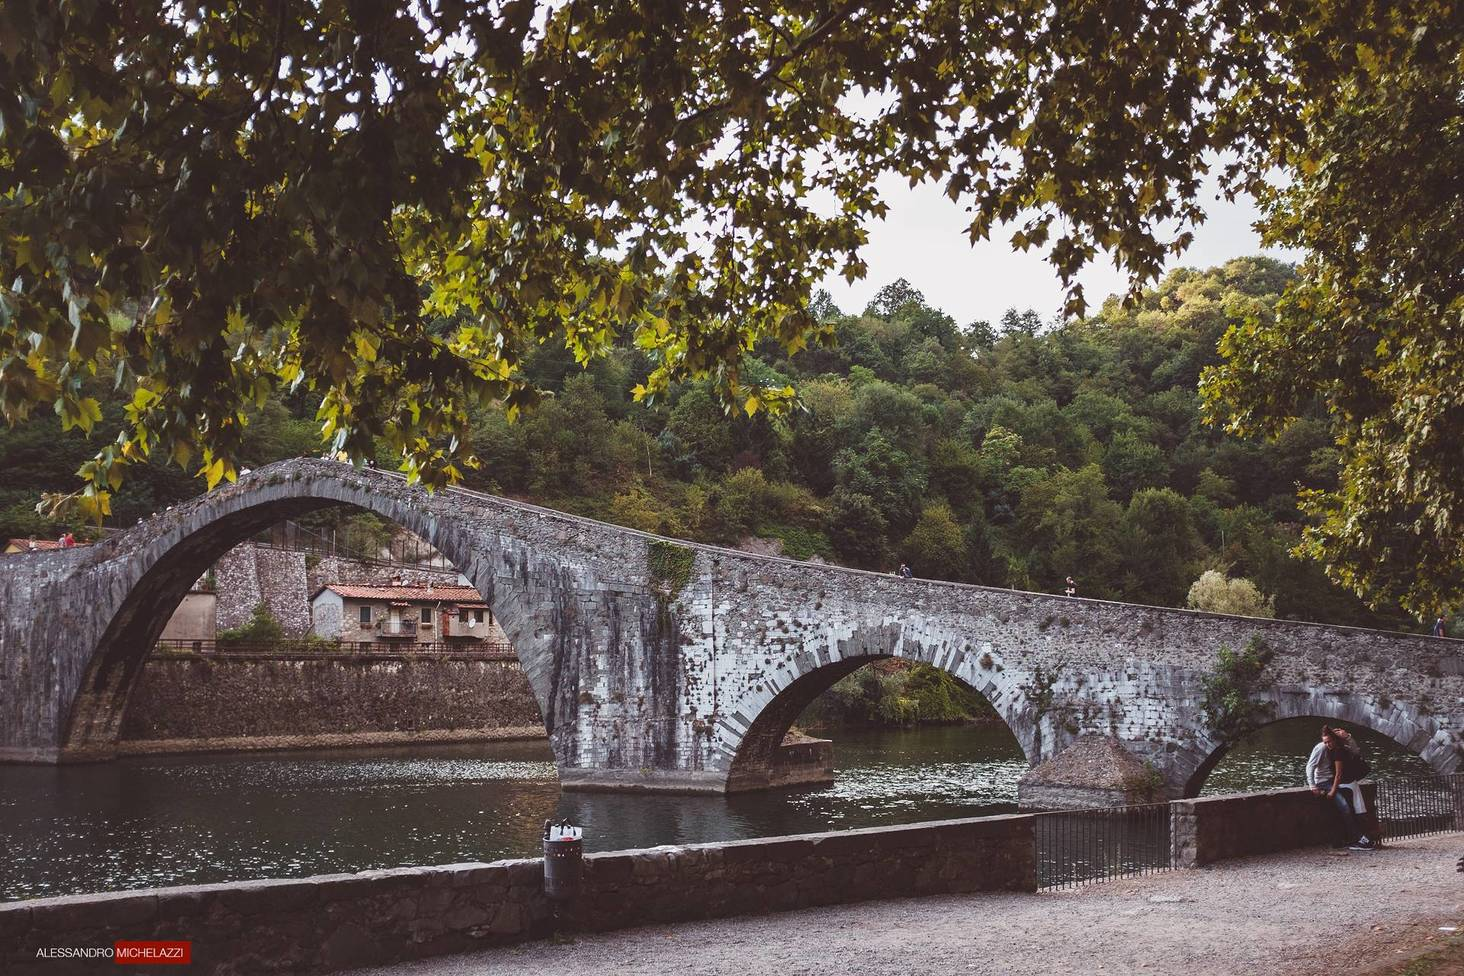 The devil's bridge close to Lucca in Tuscany